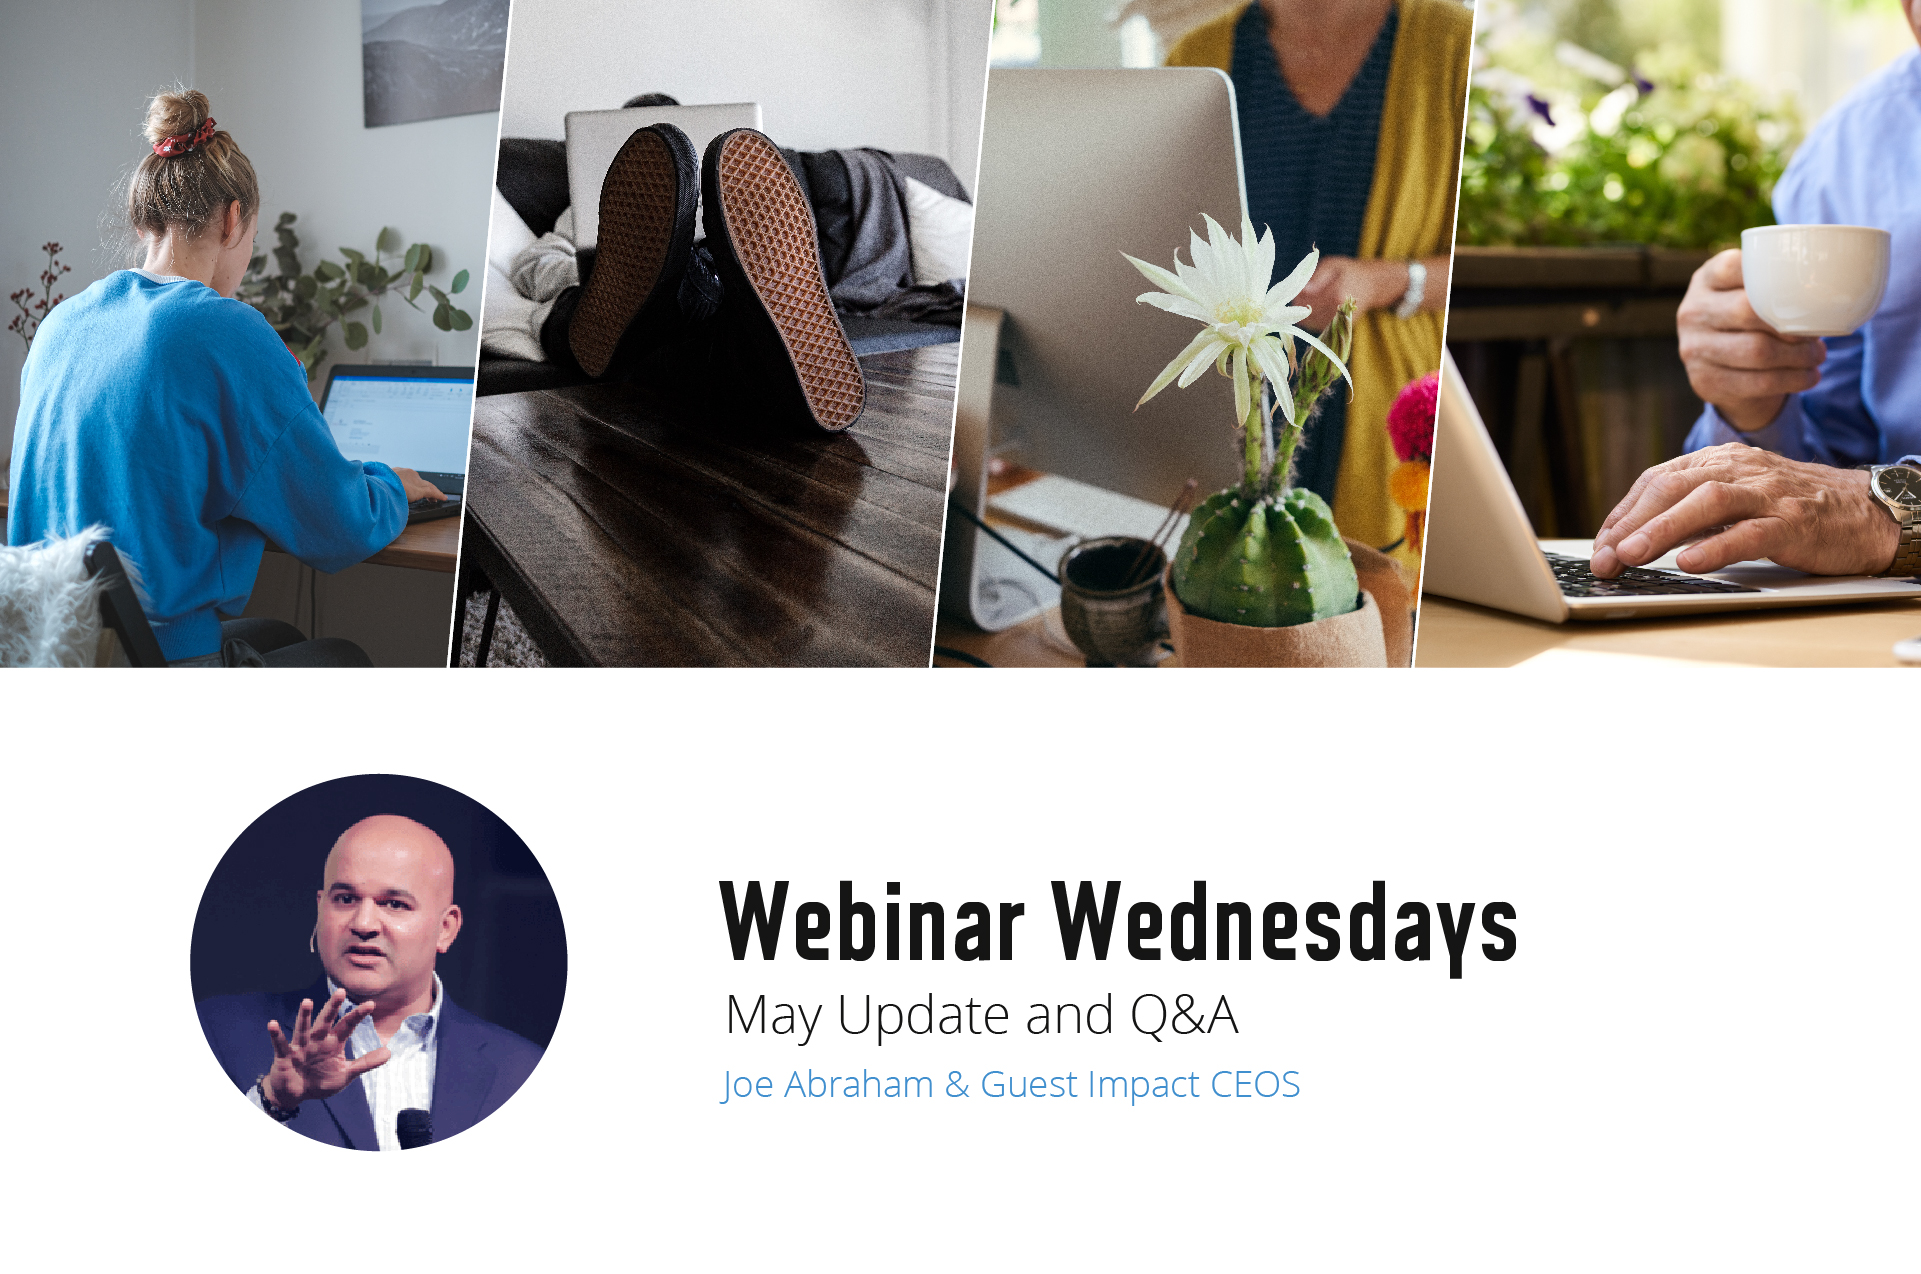 webinar wednesdays Q and A